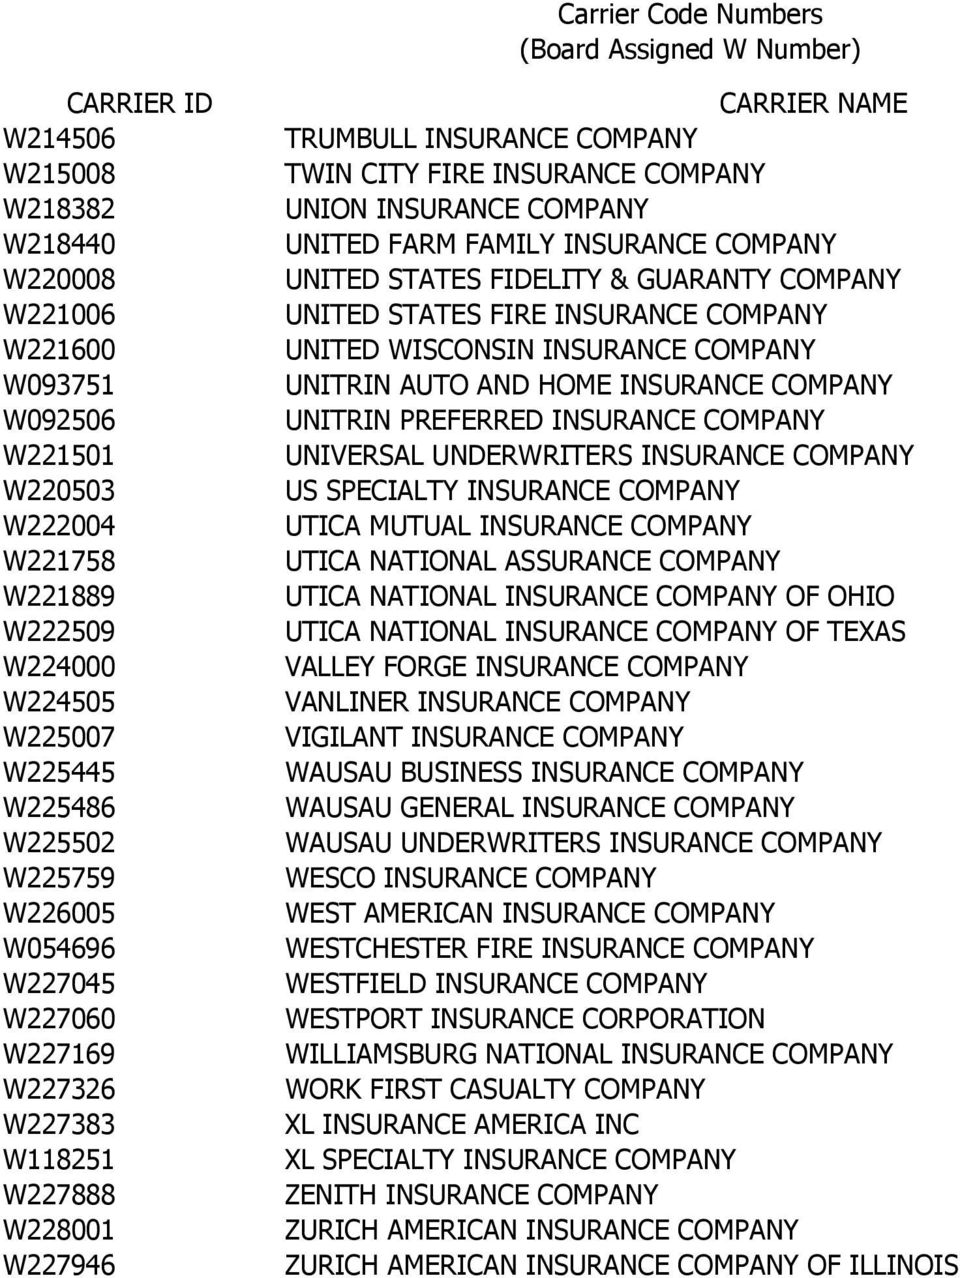 FIDELITY & GUARANTY COMPANY UNITED STATES FIRE INSURANCE COMPANY UNITED WISCONSIN INSURANCE COMPANY UNITRIN AUTO AND HOME INSURANCE COMPANY UNITRIN PREFERRED INSURANCE COMPANY UNIVERSAL UNDERWRITERS